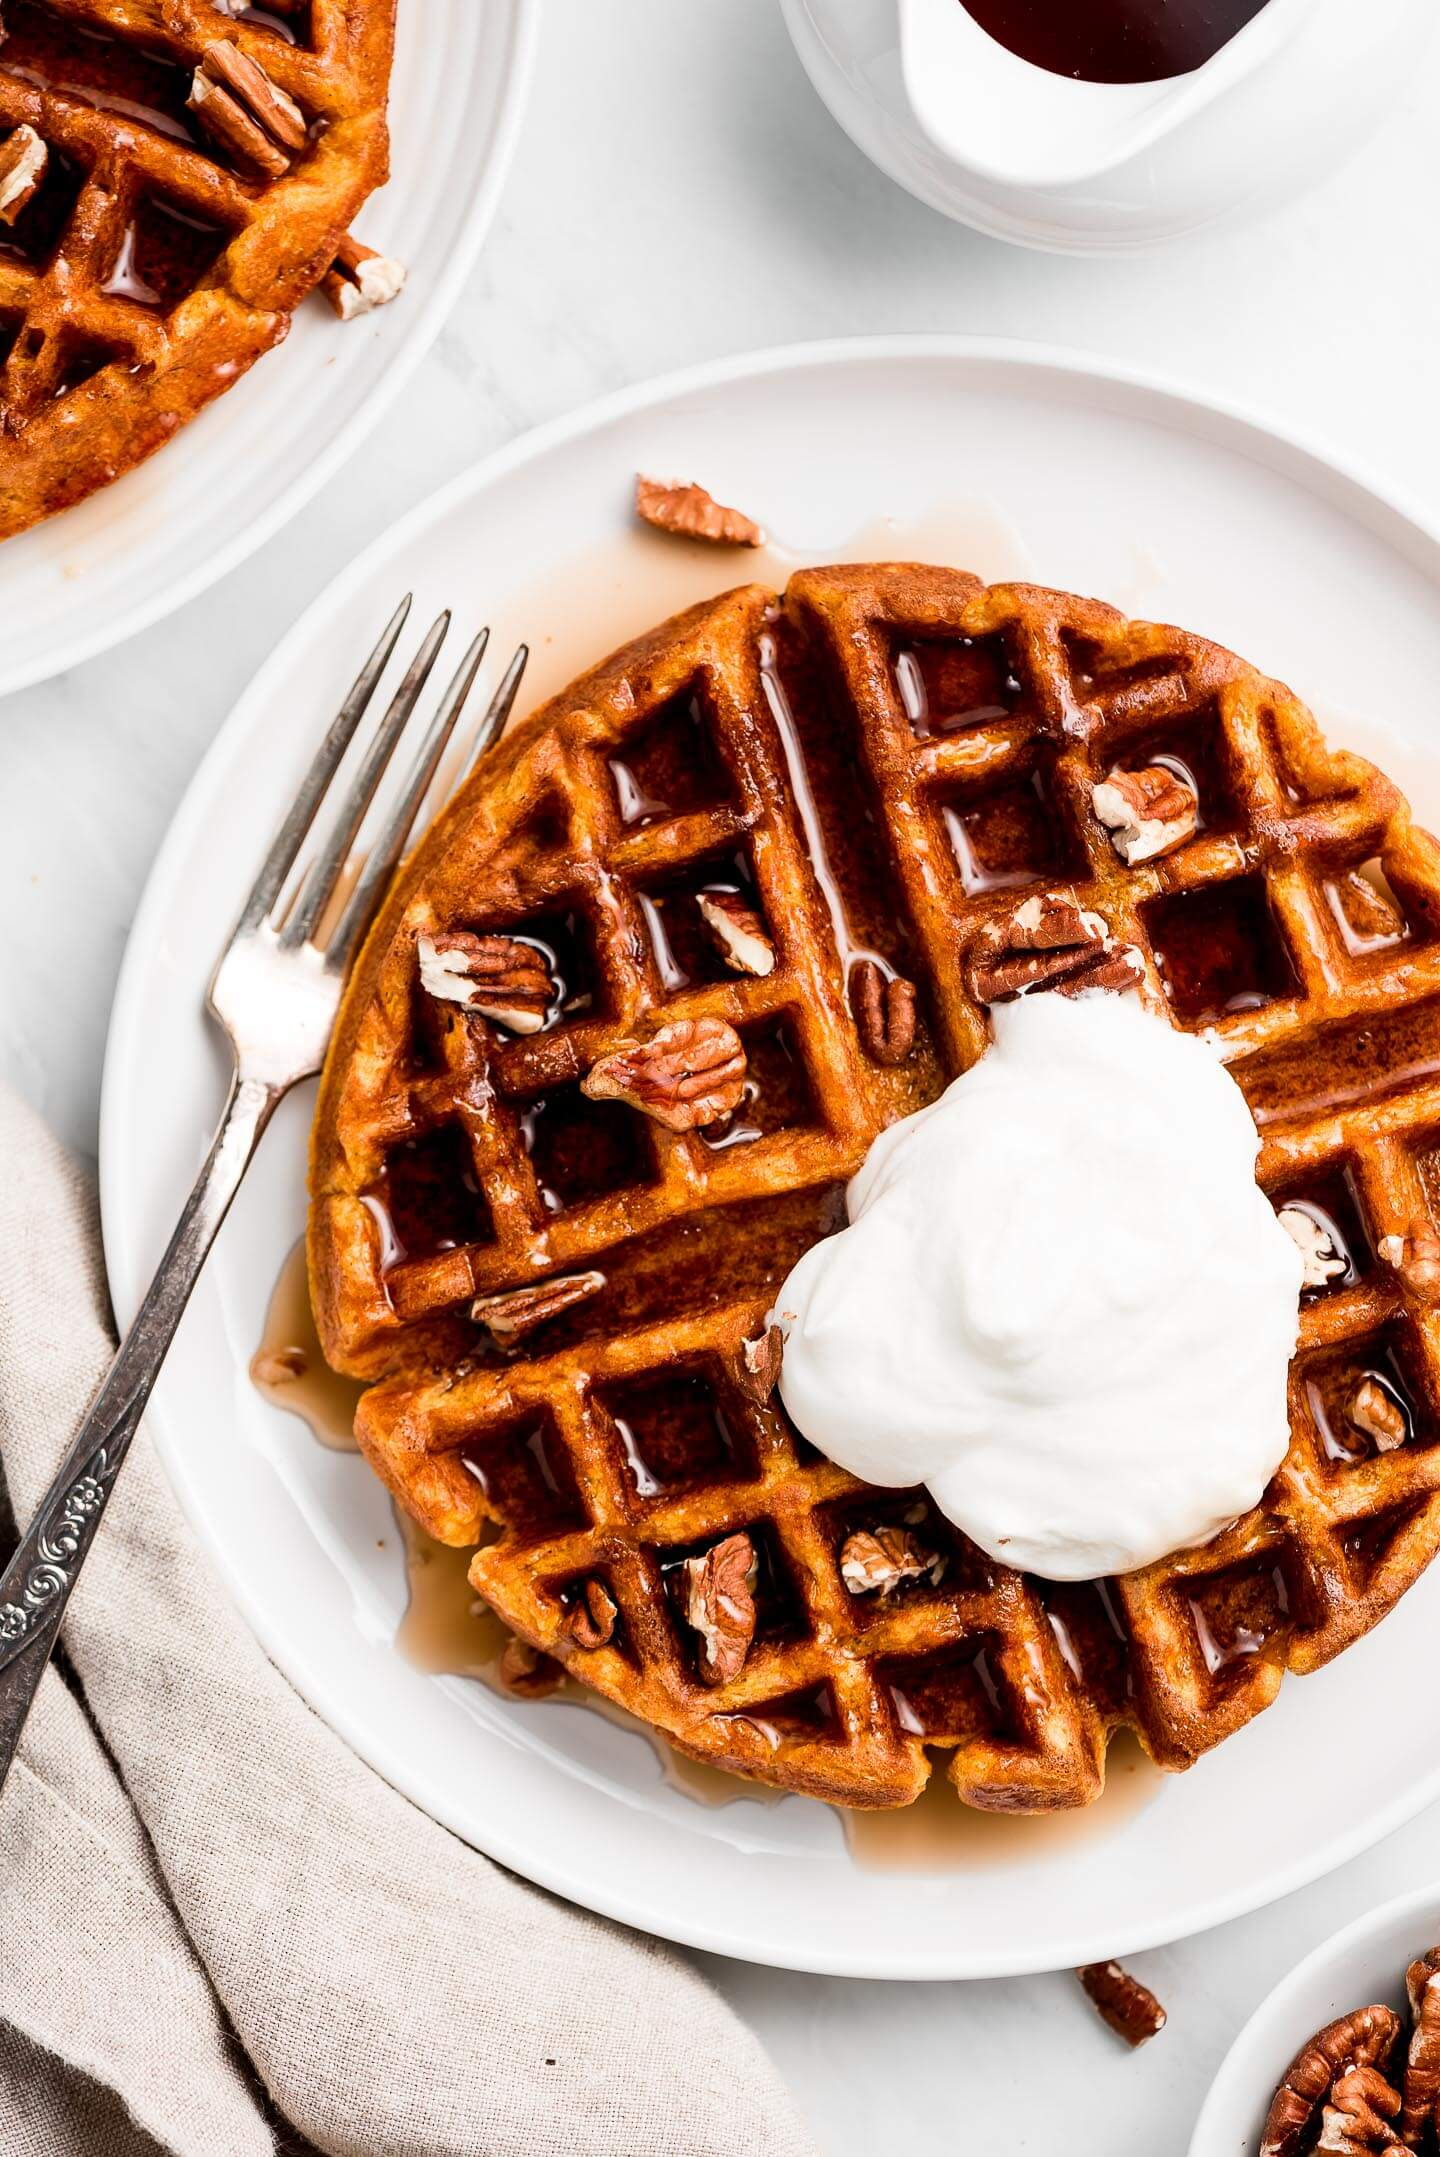 Pumpkin waffle on a white plate with maple syrup, pecans, and whipped cream on top.